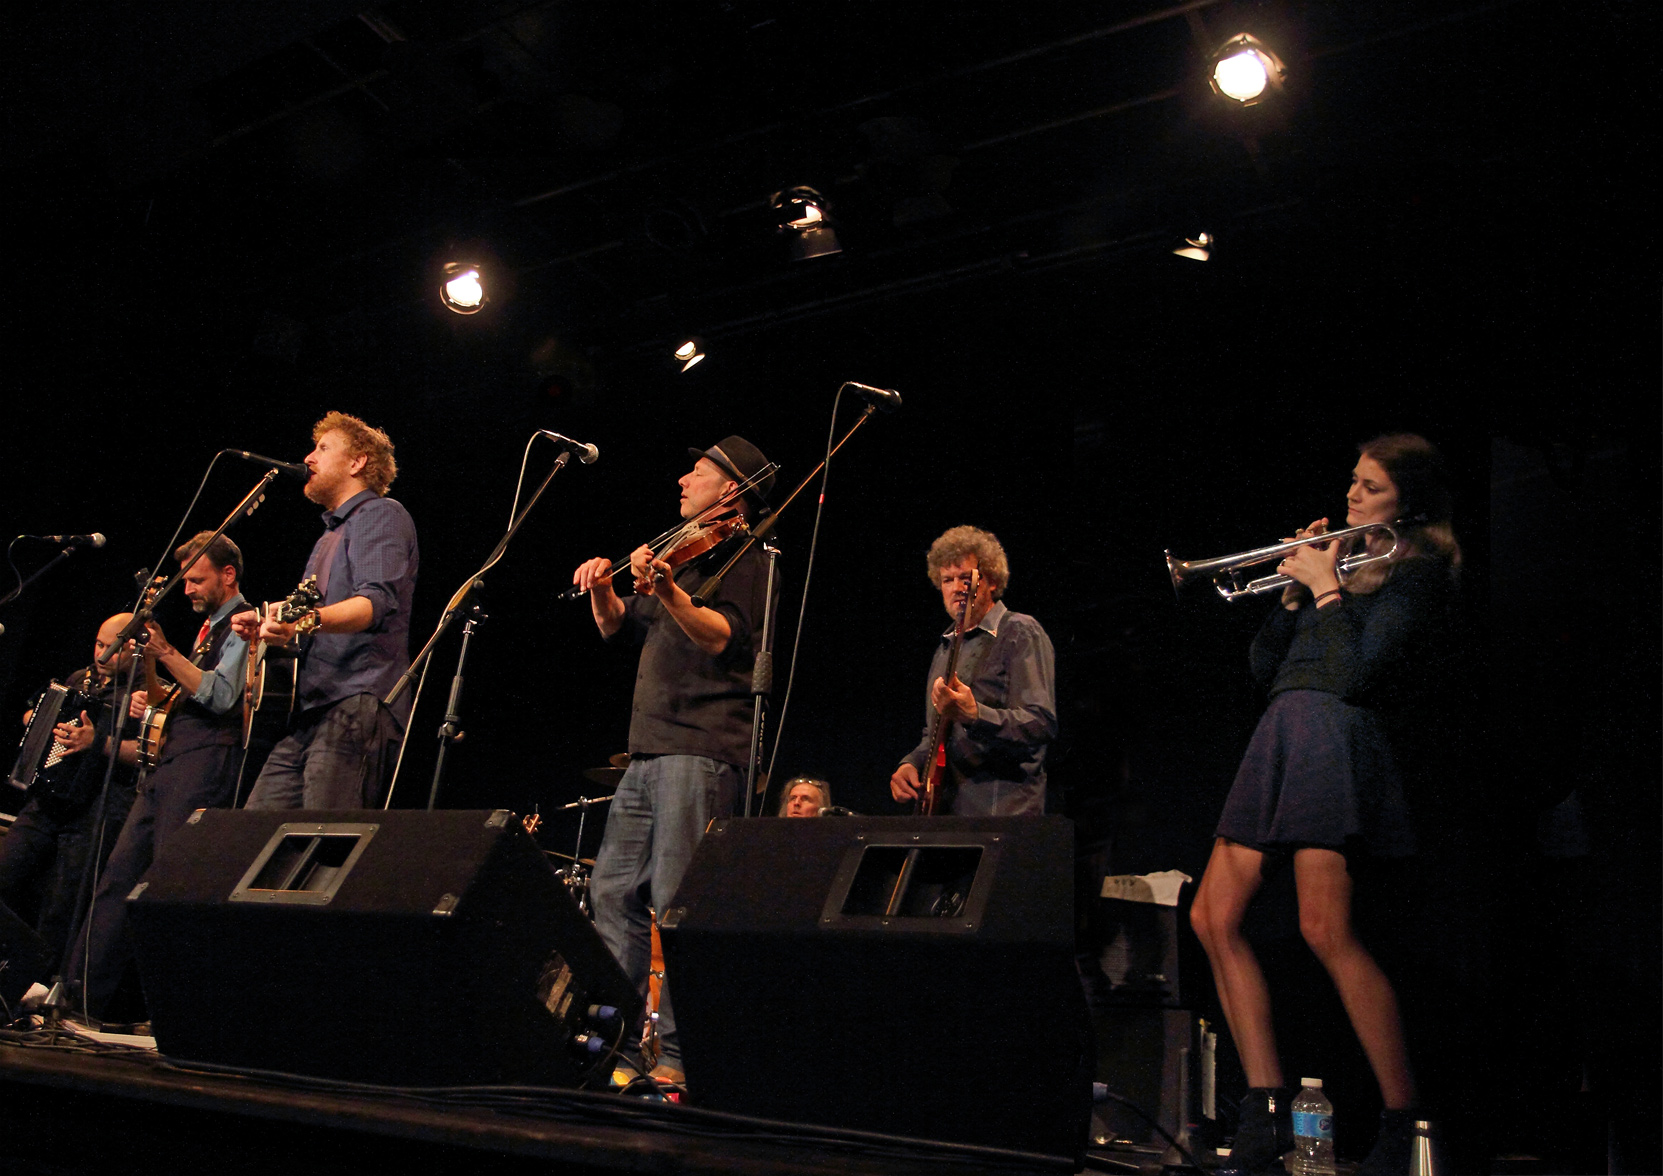 PDH-on-stage-7.jpg